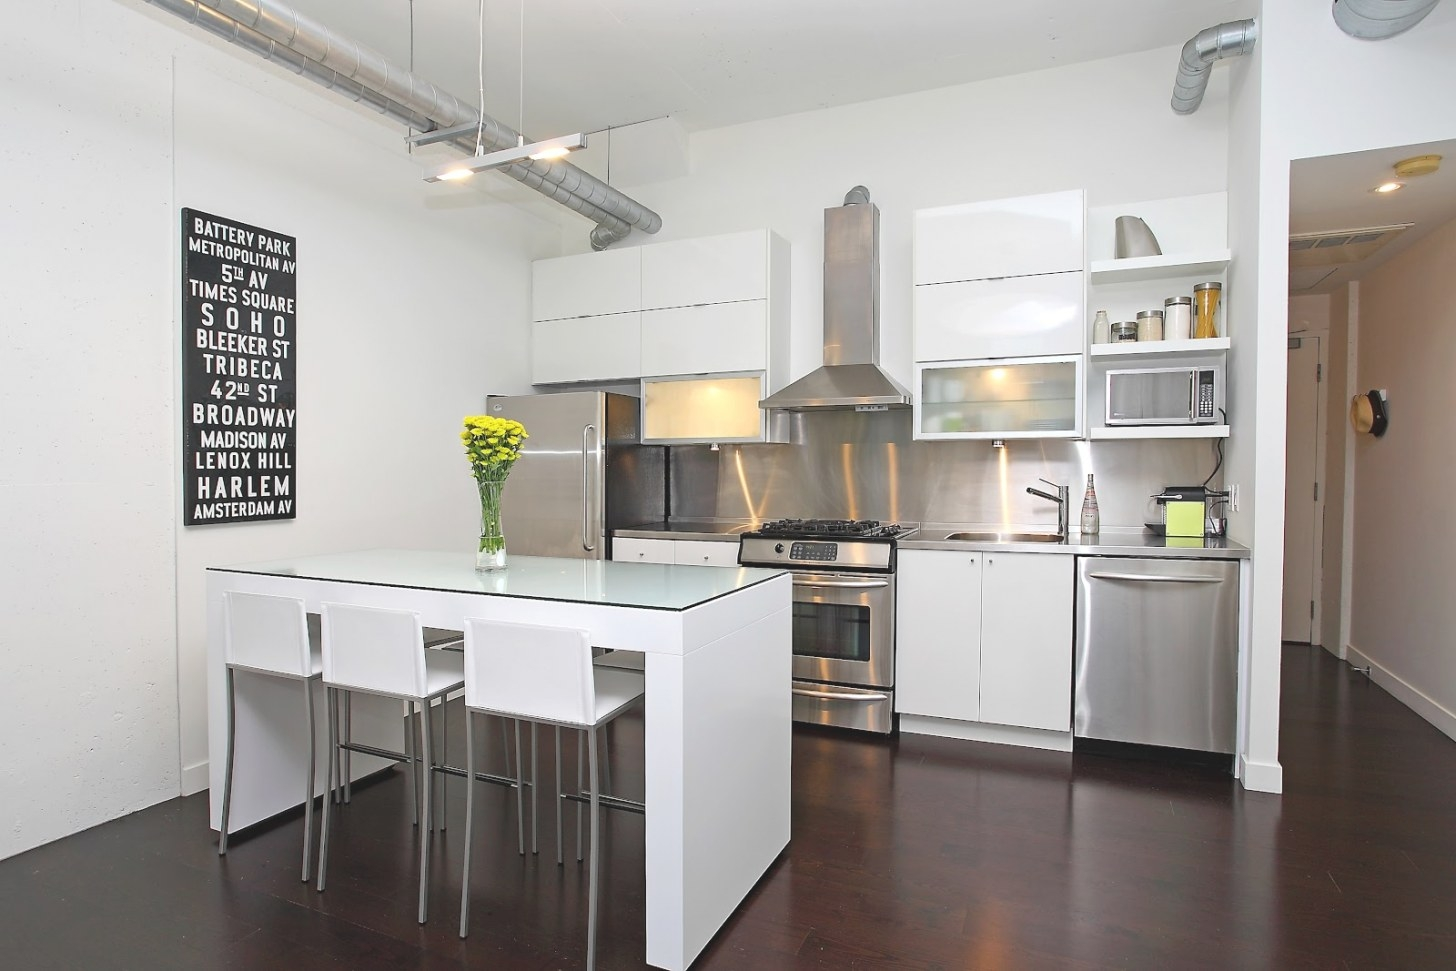 Condobox: How Can I Make A Small Kitchen Function Best? for Image Of Small Kitchen